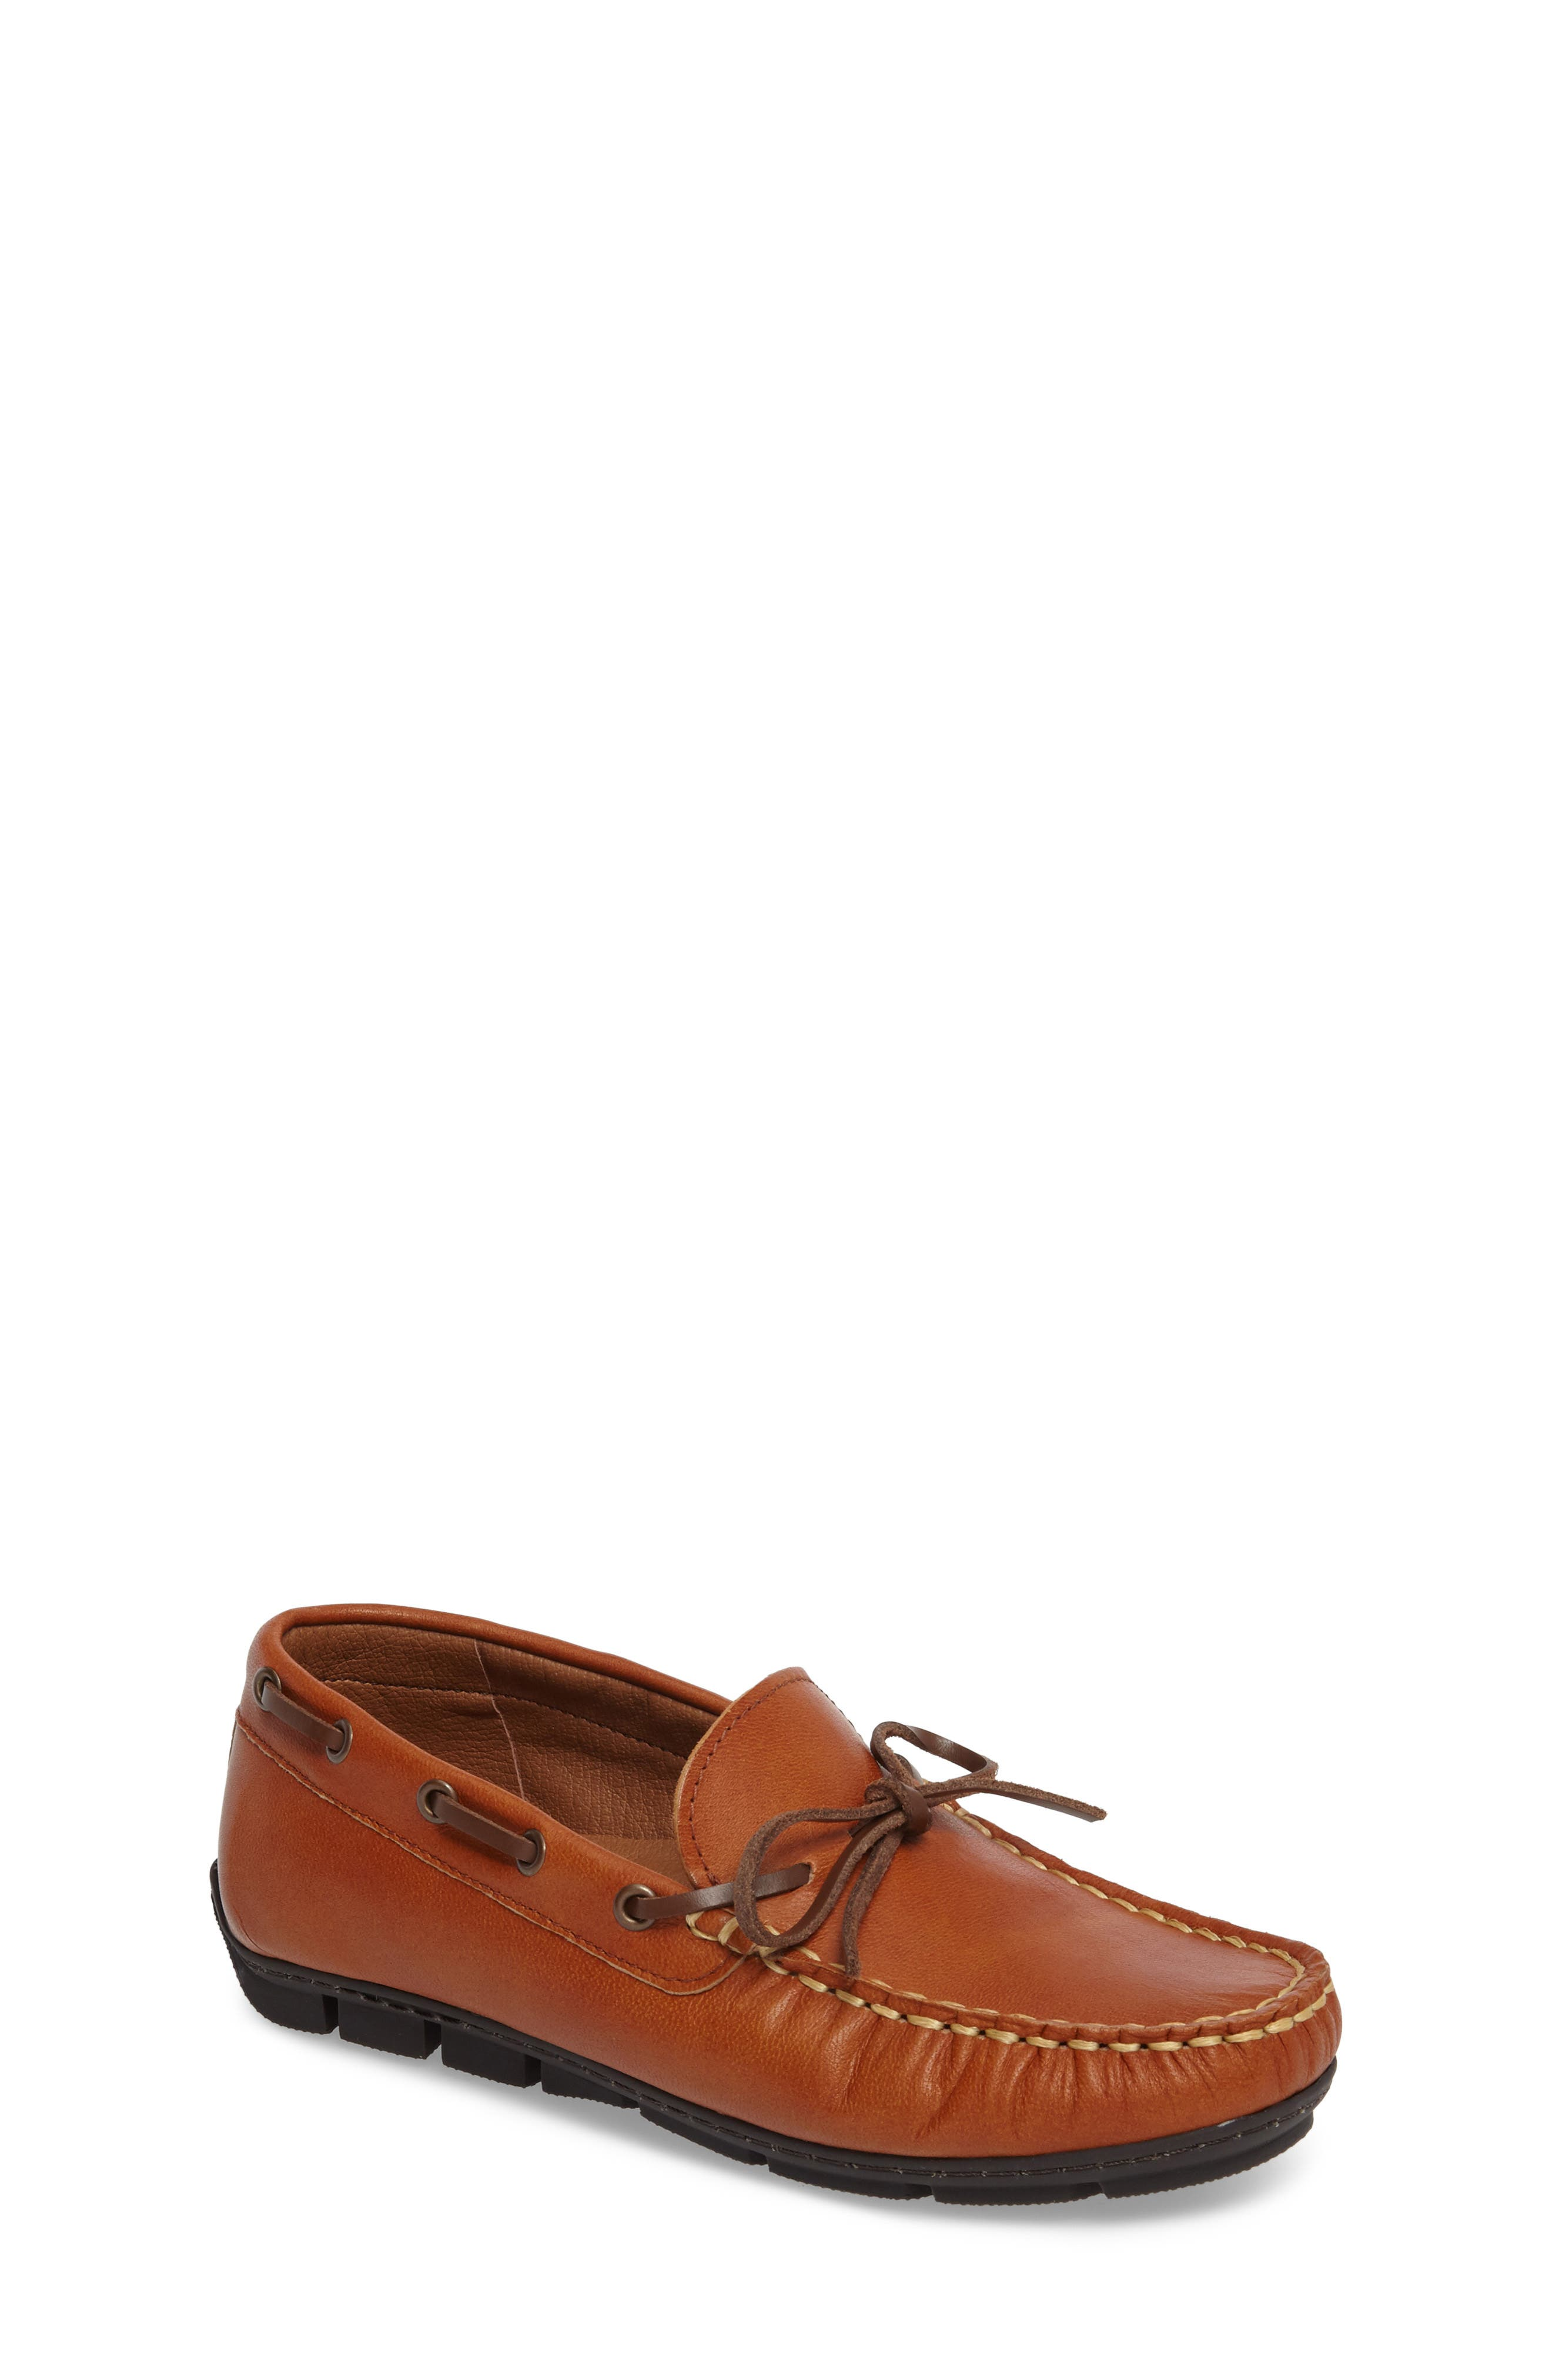 Doile Loafer,                             Main thumbnail 1, color,                             NATURALE LEATHER